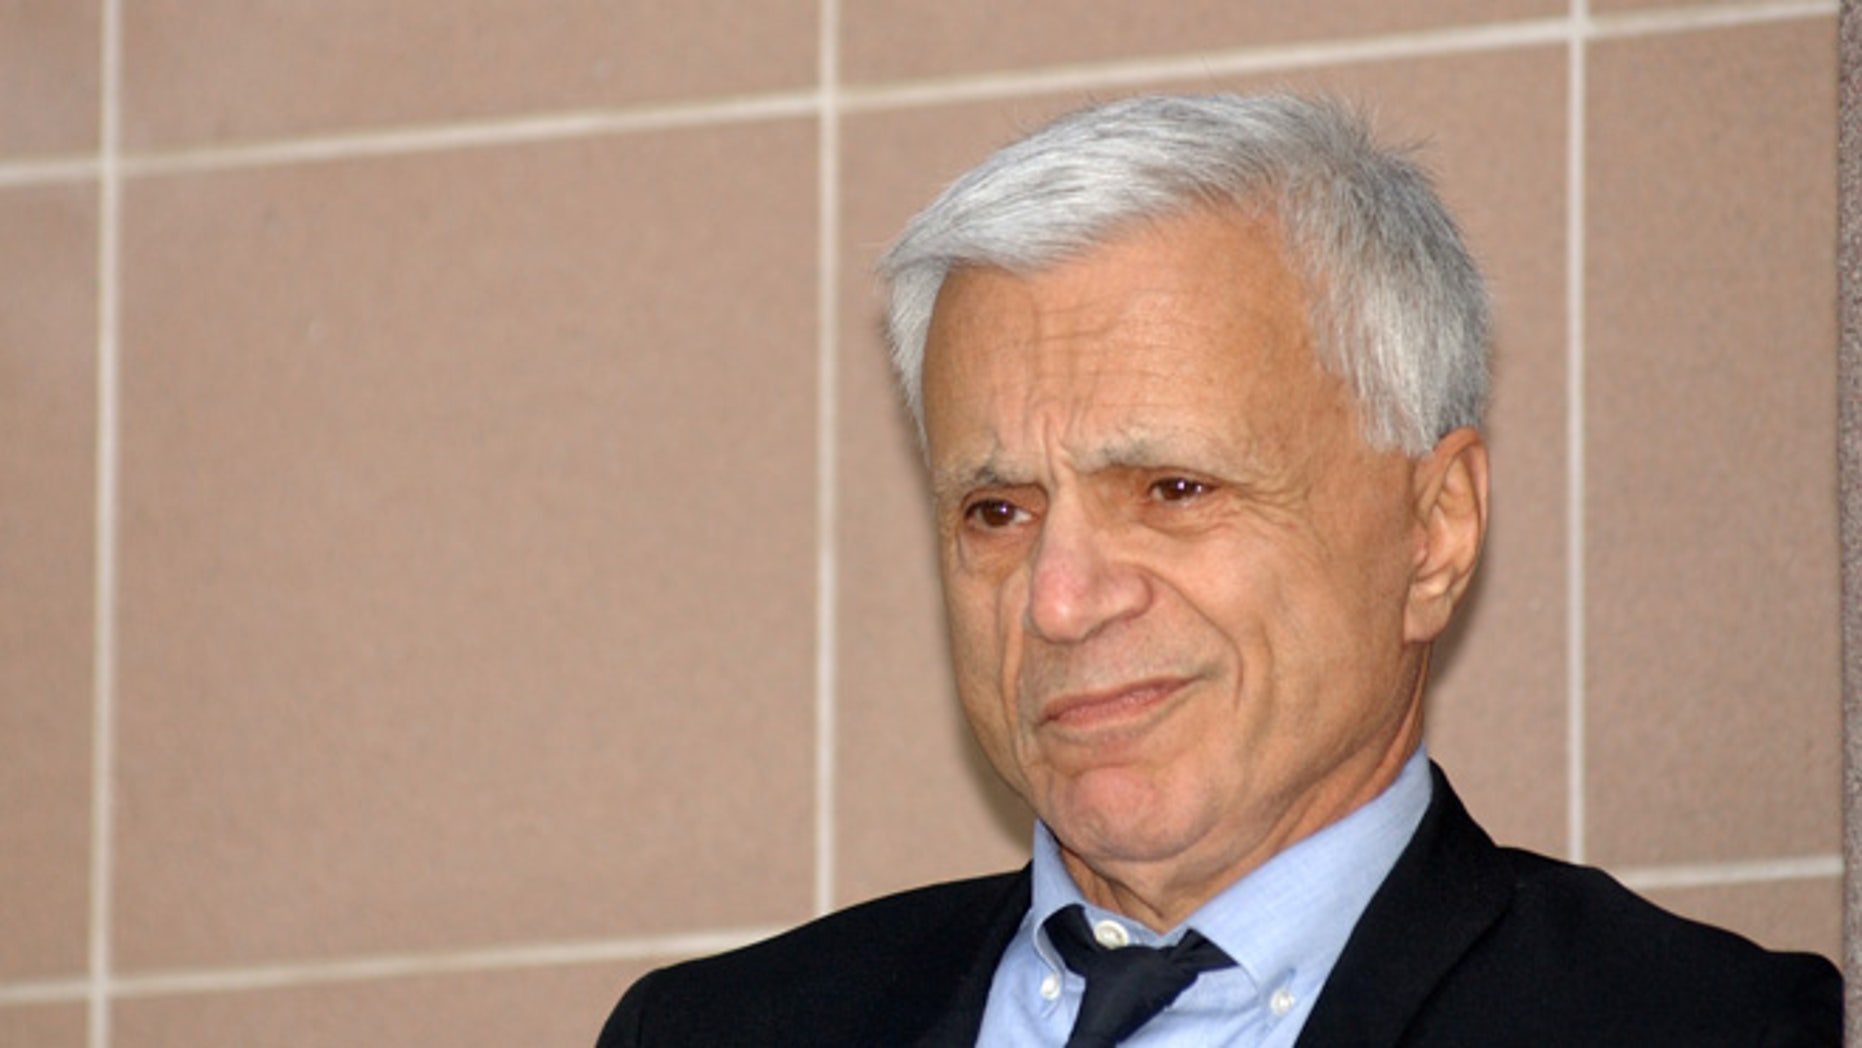 Robert Blake has reportedly called it quits on his third marriage, according to TMZ.